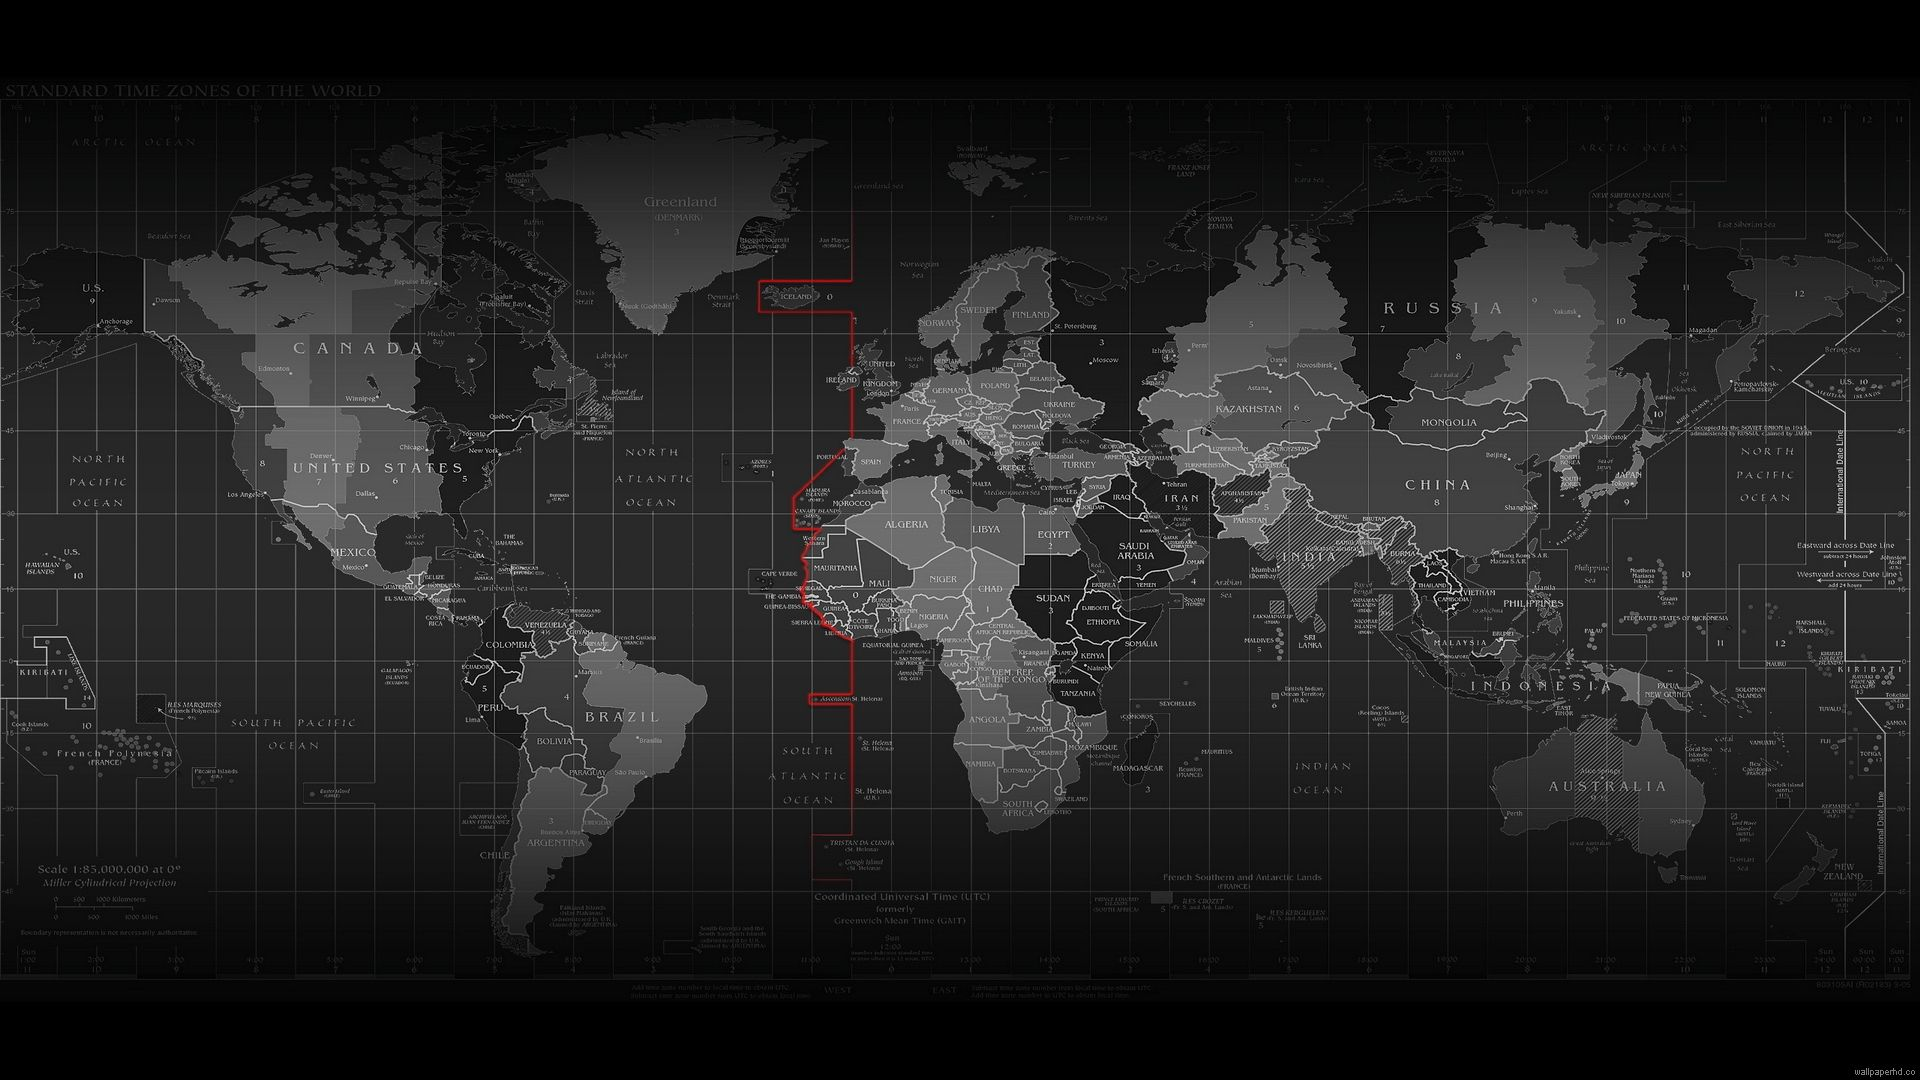 Hd Pc Wallpaper Download Group With Items World Map Wallpaper World Wallpaper Cool World Map